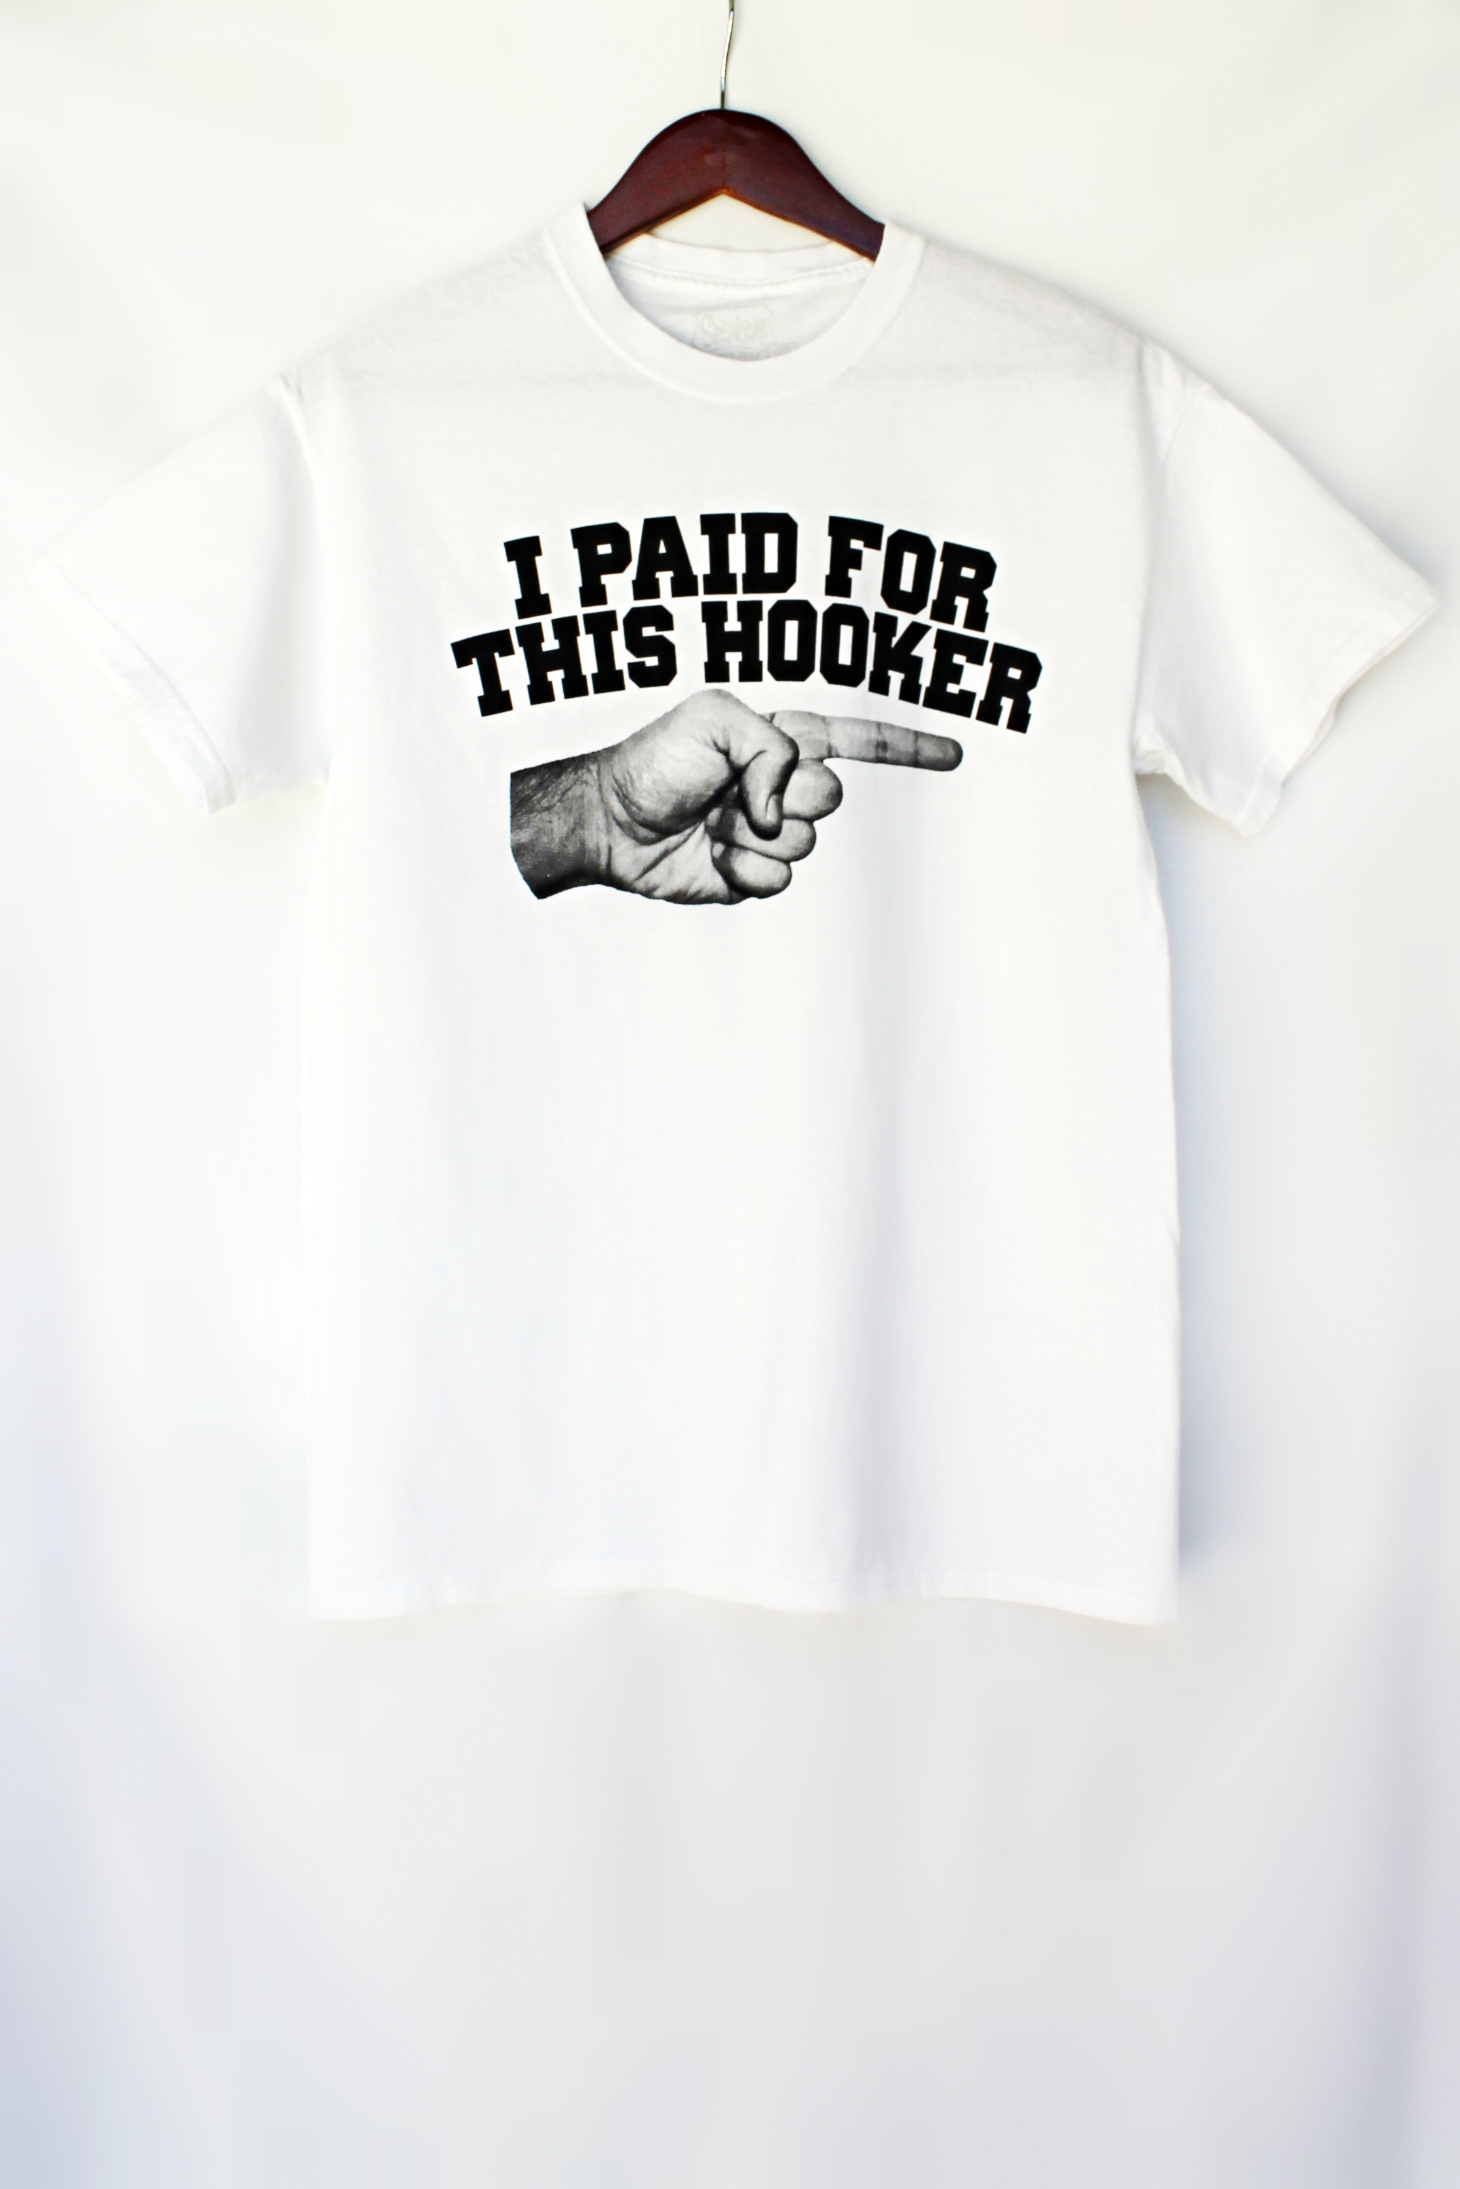 Hooker T-Shirt | Just Vu